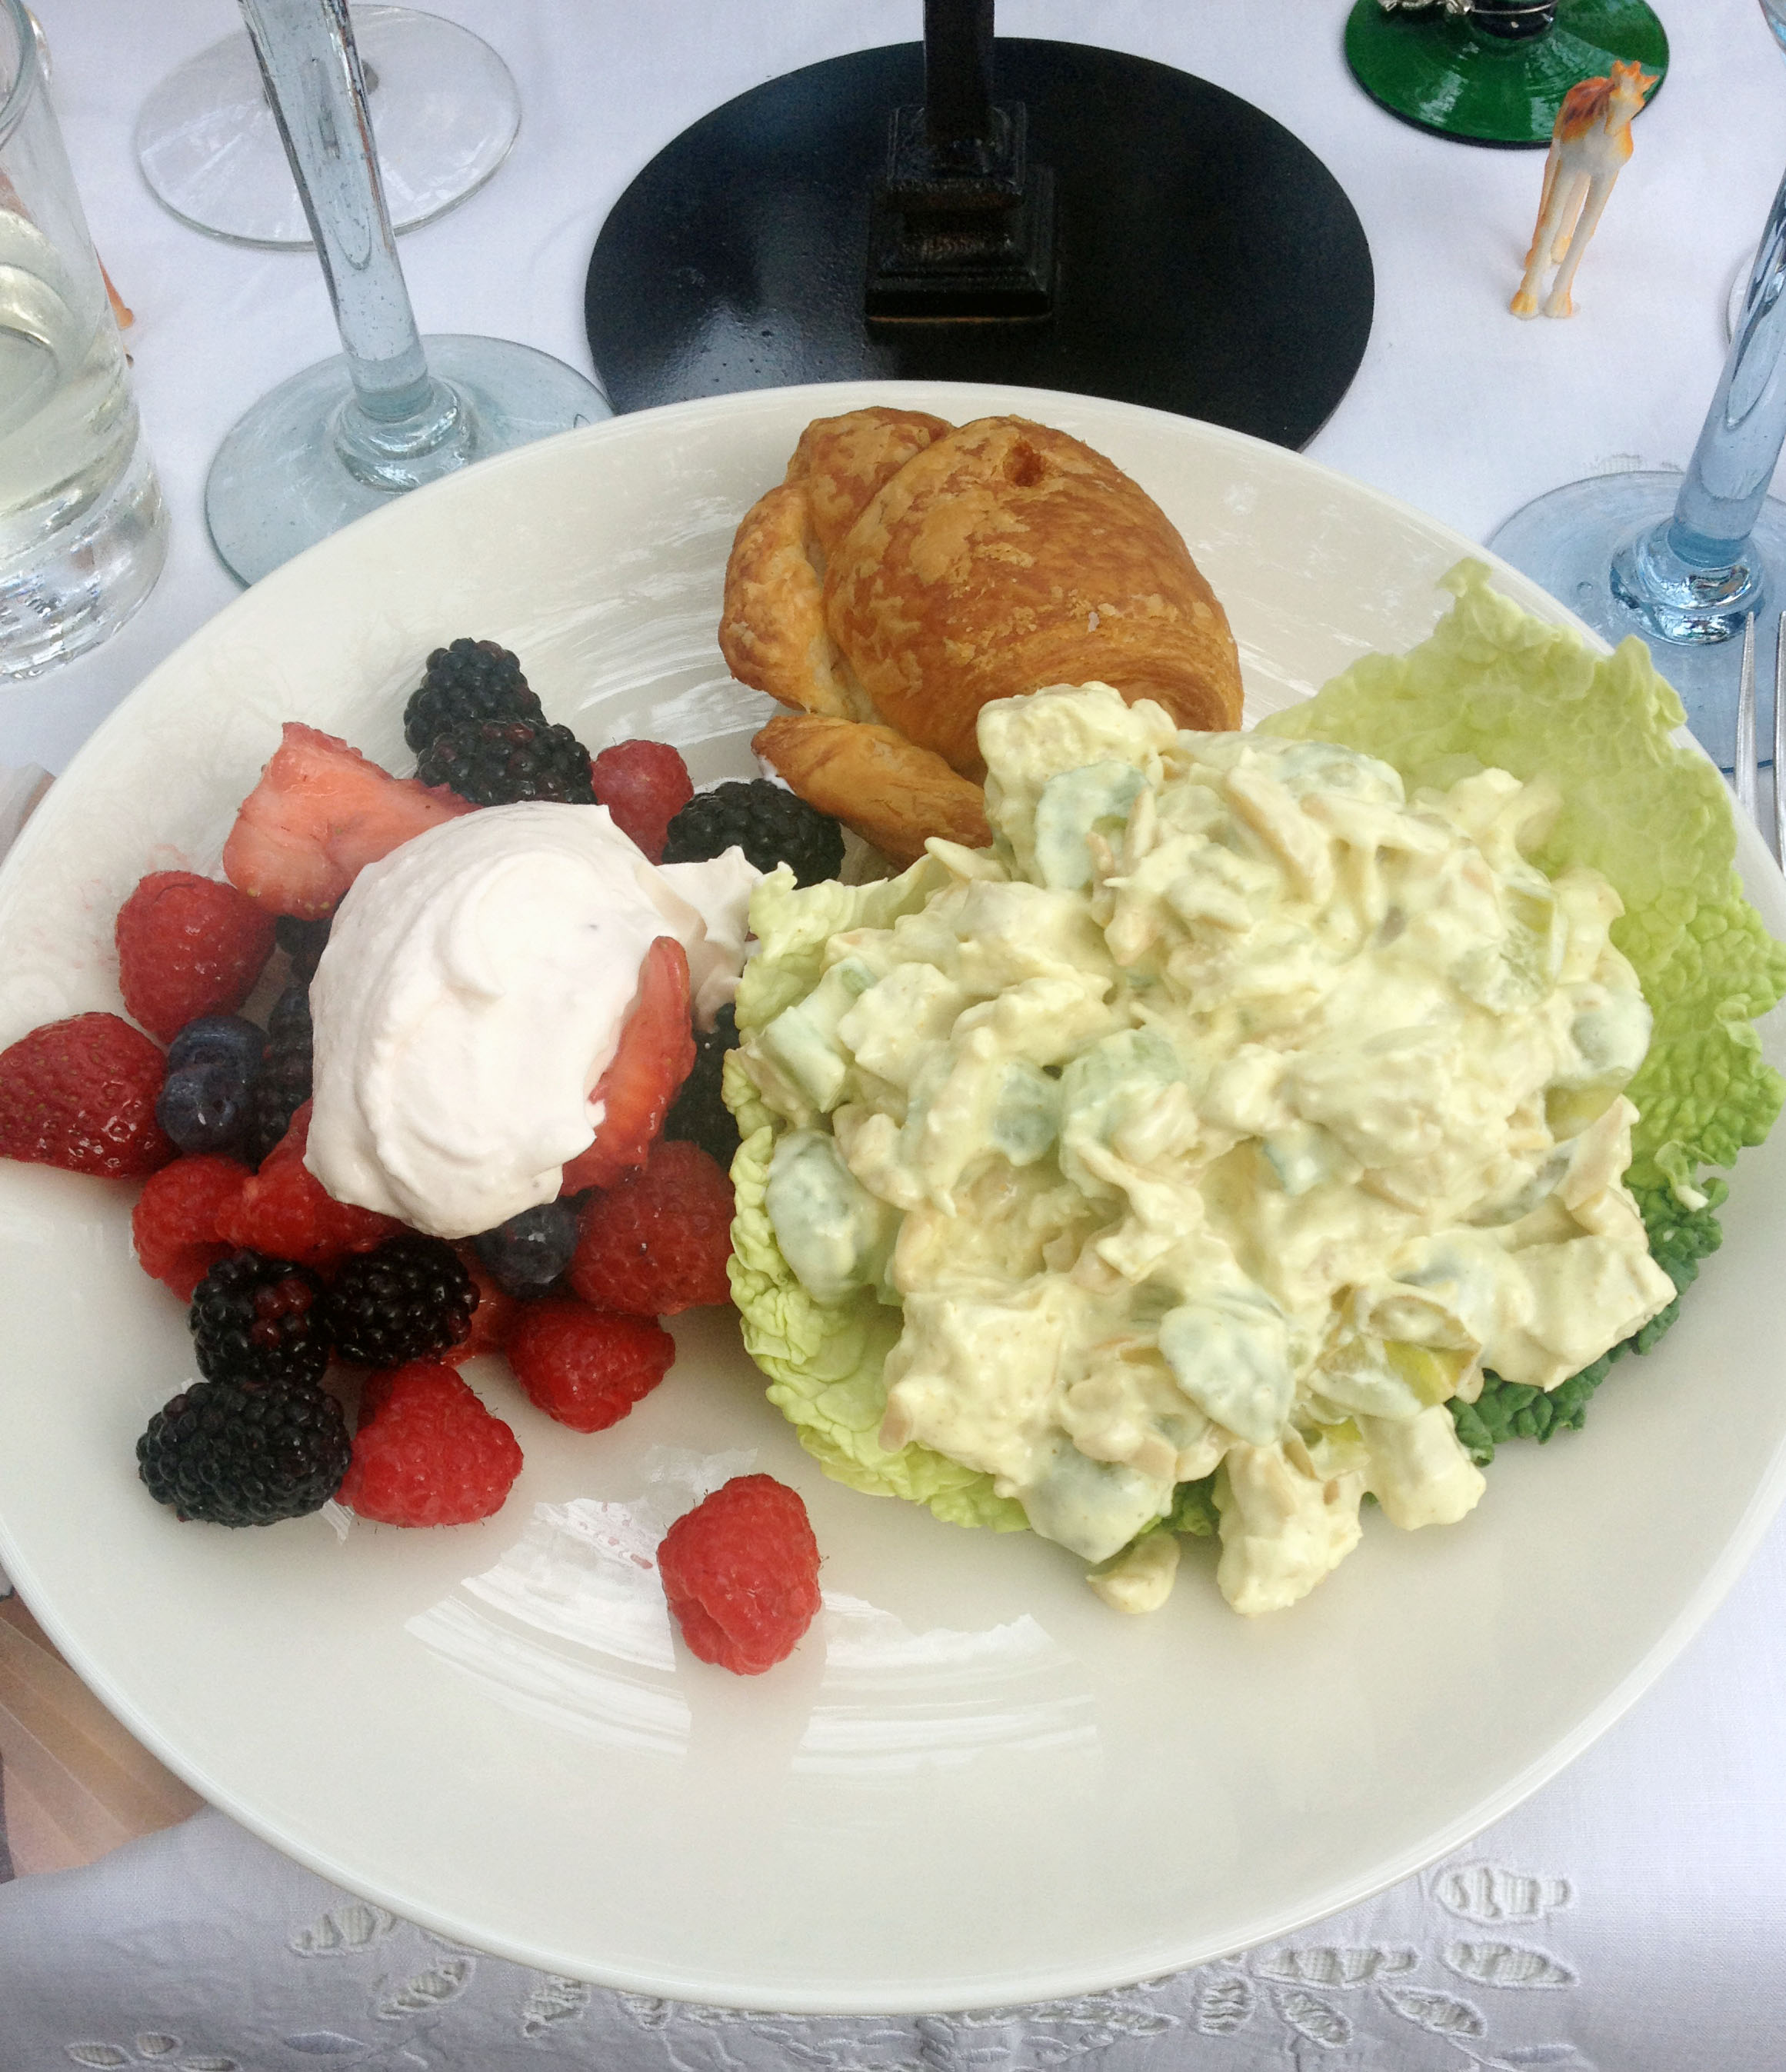 Curry Chicken Salad, croissants, and fresh summer berries